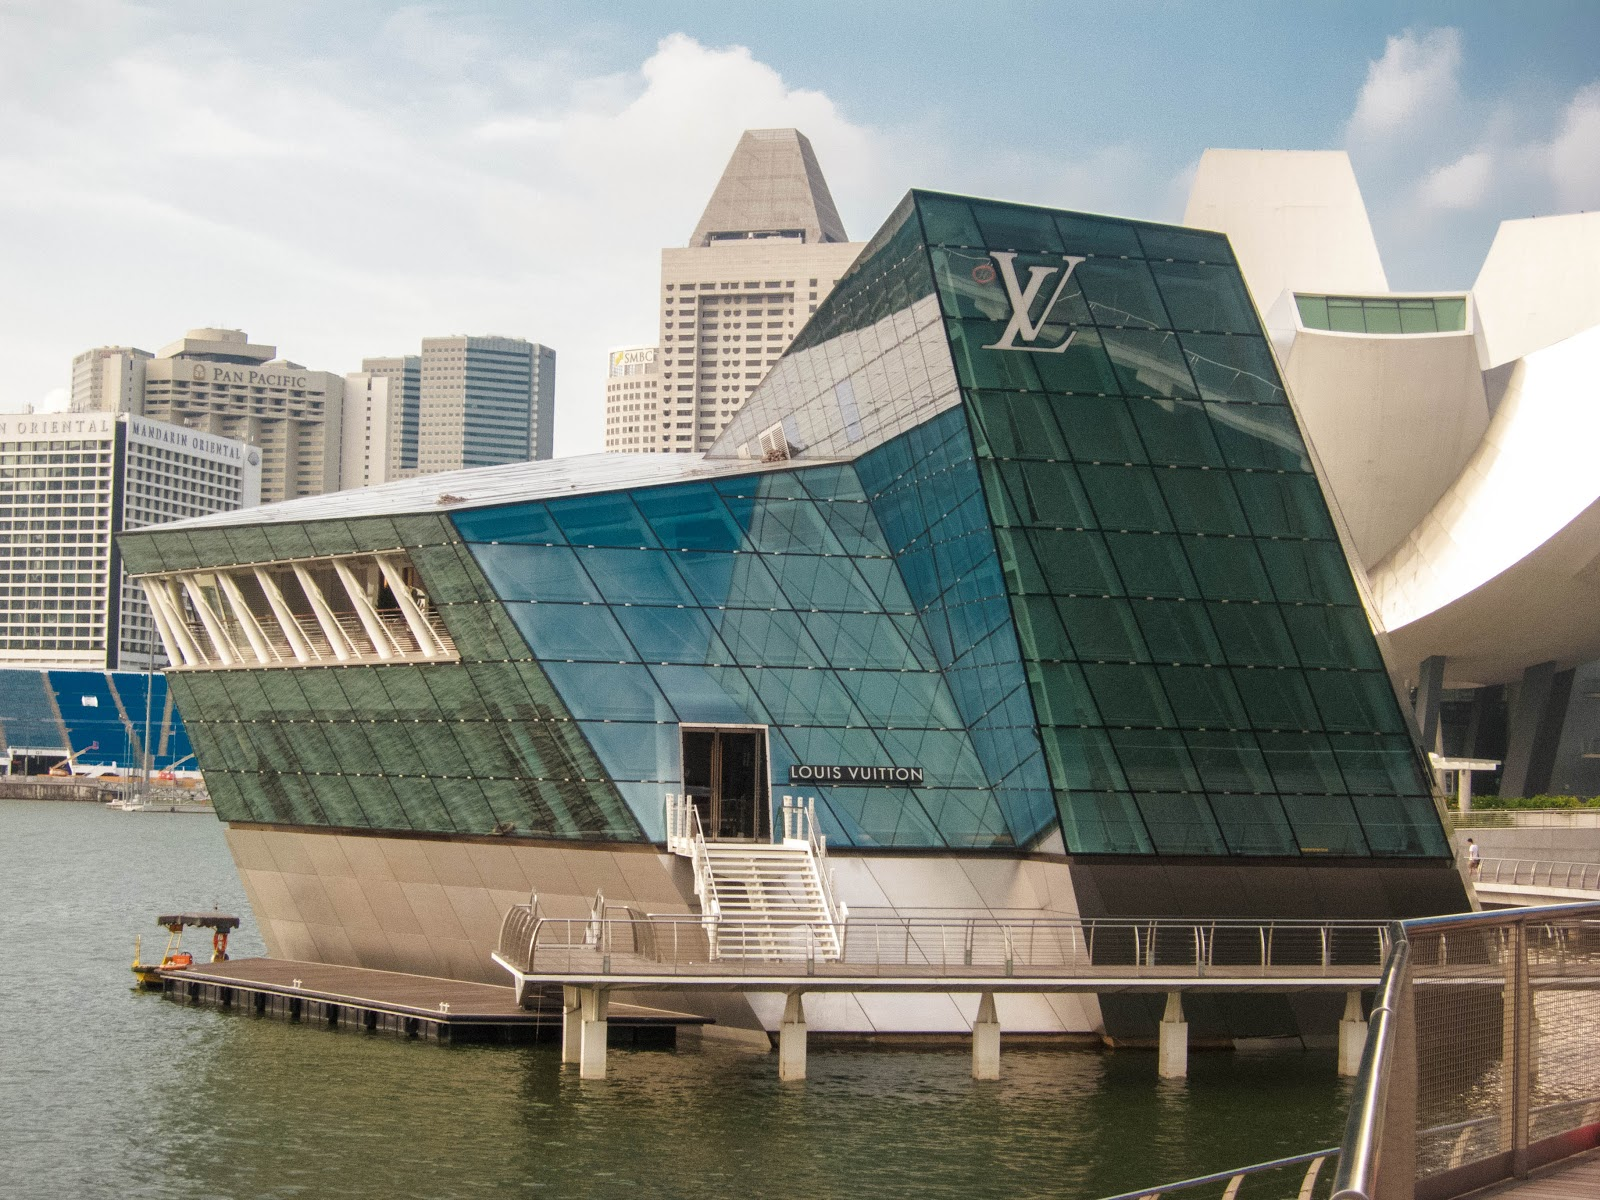 Louis Vuitton LV flagship stores at The Shoppes, Marina Bay Sands, Singapore | Svelte Salivations - Travel